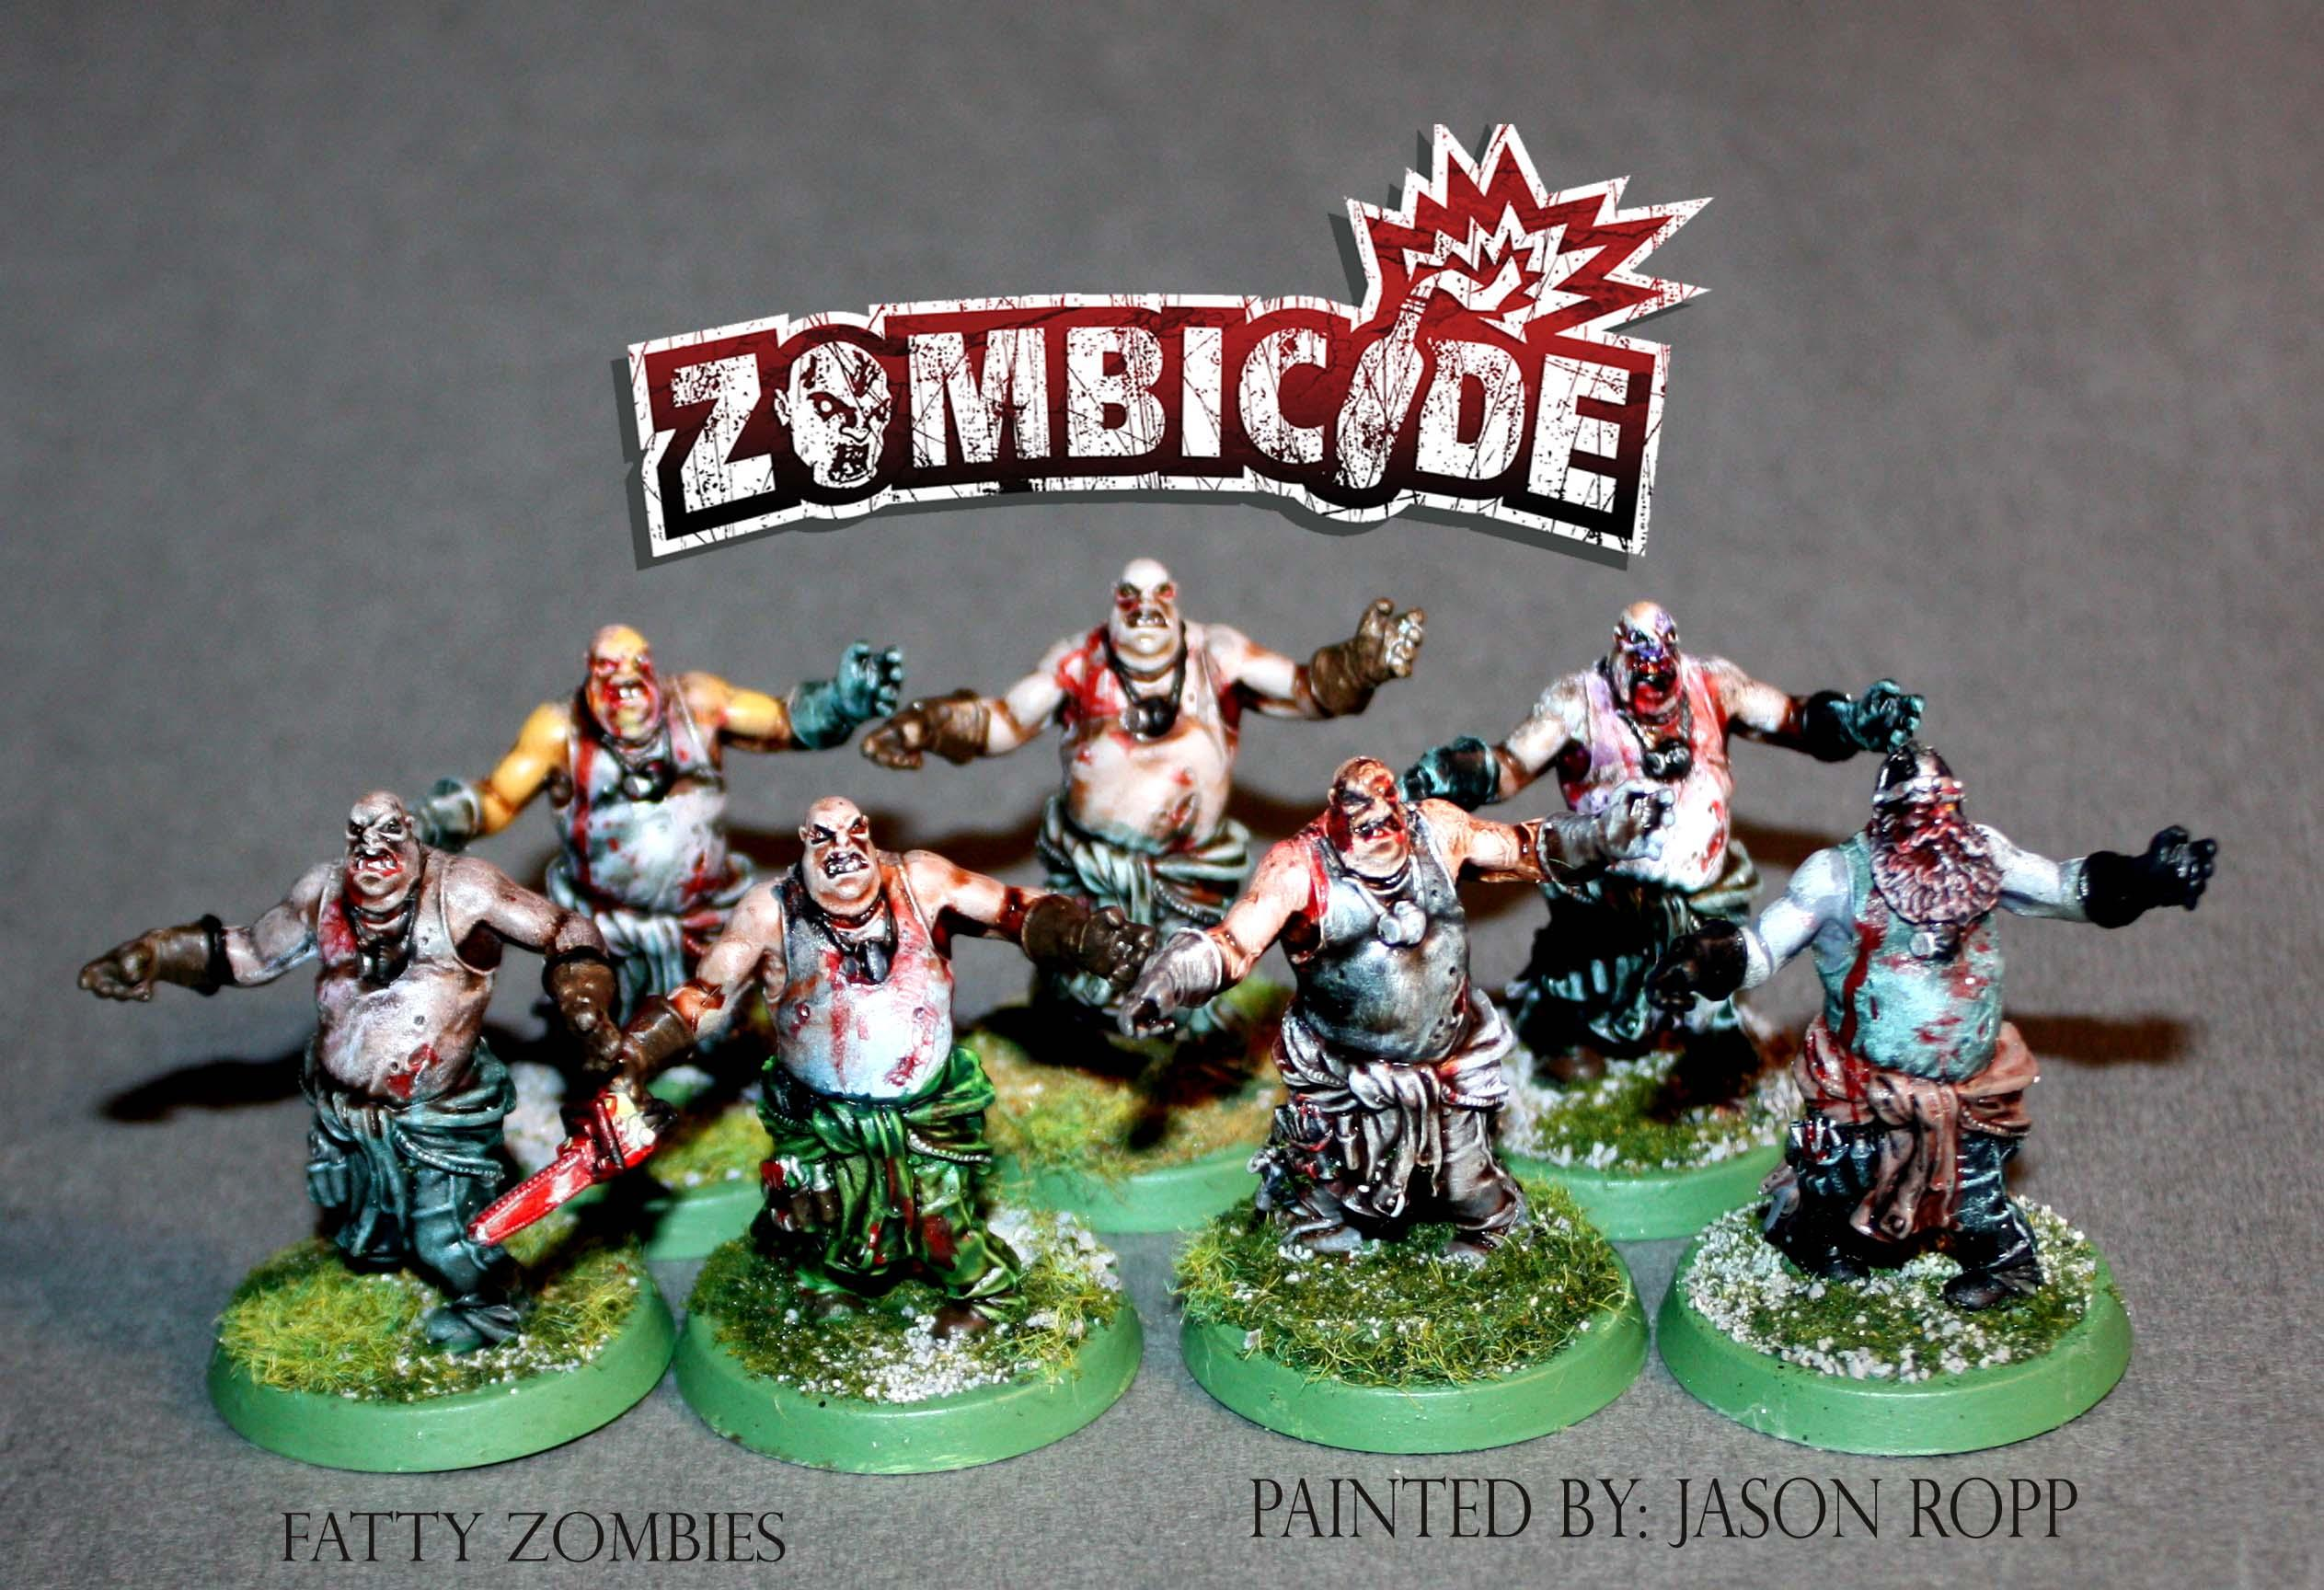 28mm, 32mm, Abominaton, All Out War, Andrea, Attack, Battle, Cool Mini Or Not, Game, Gamenight, Michone, Miniature, Miniatures, Neegan, Ral Partha, Rick, Skirmish, Survivors, Undead, Walkers, Walking Dead, Wargame, Wargamer, Wargames Factory, Zombicide, Zombie, Zombivors